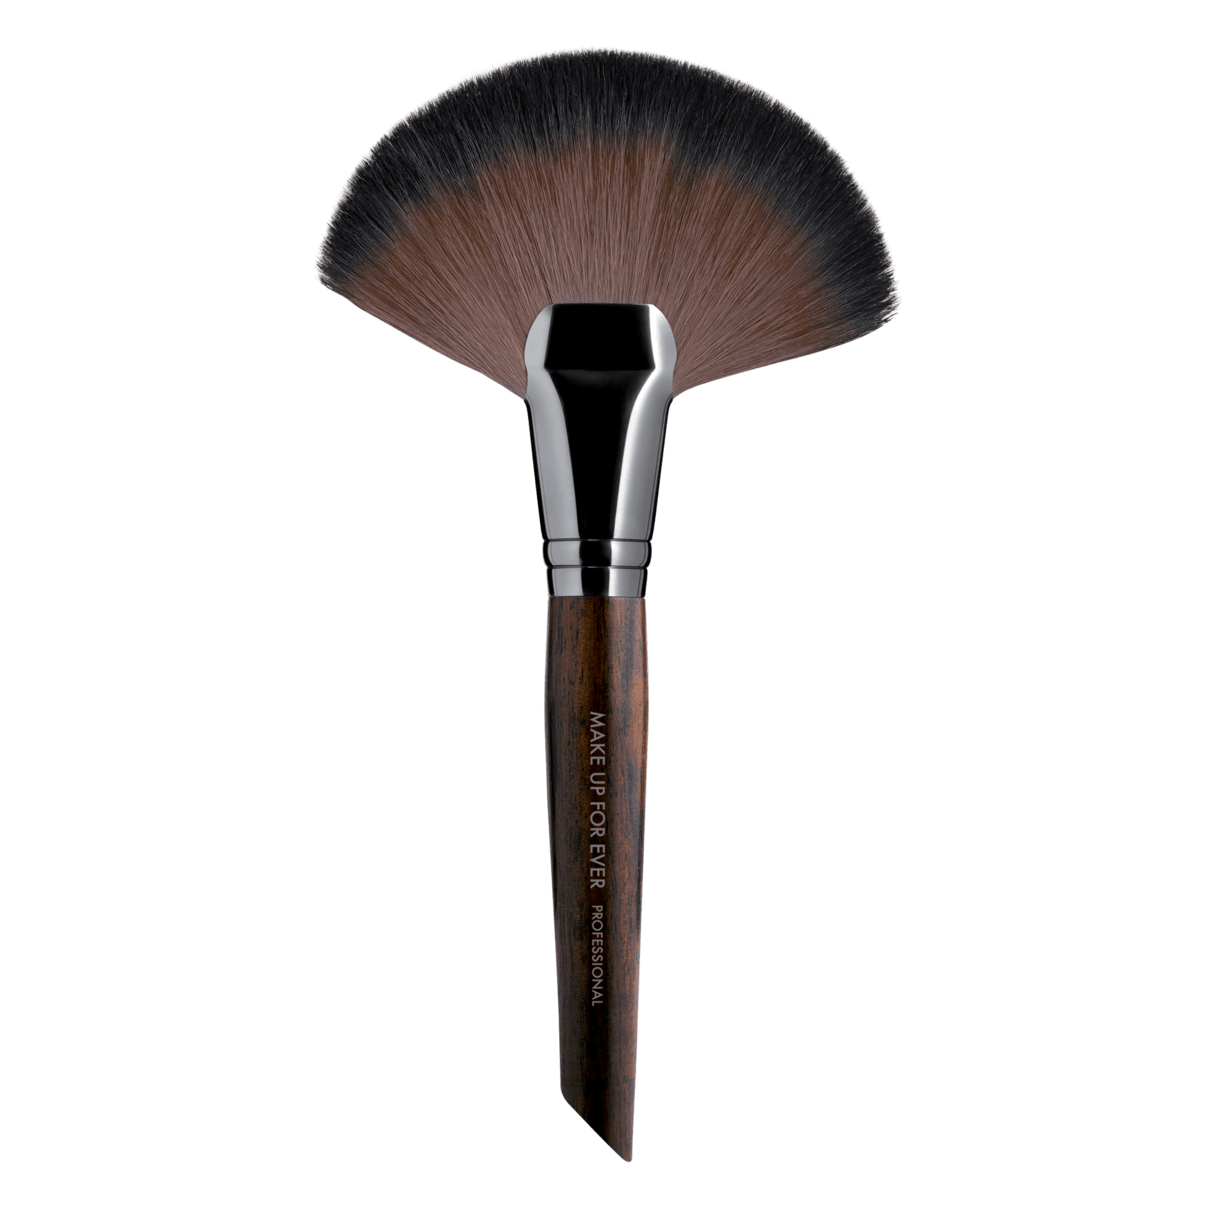 Make Up For Ever Powder Fan Brush Large Camera Ready Cosmetics